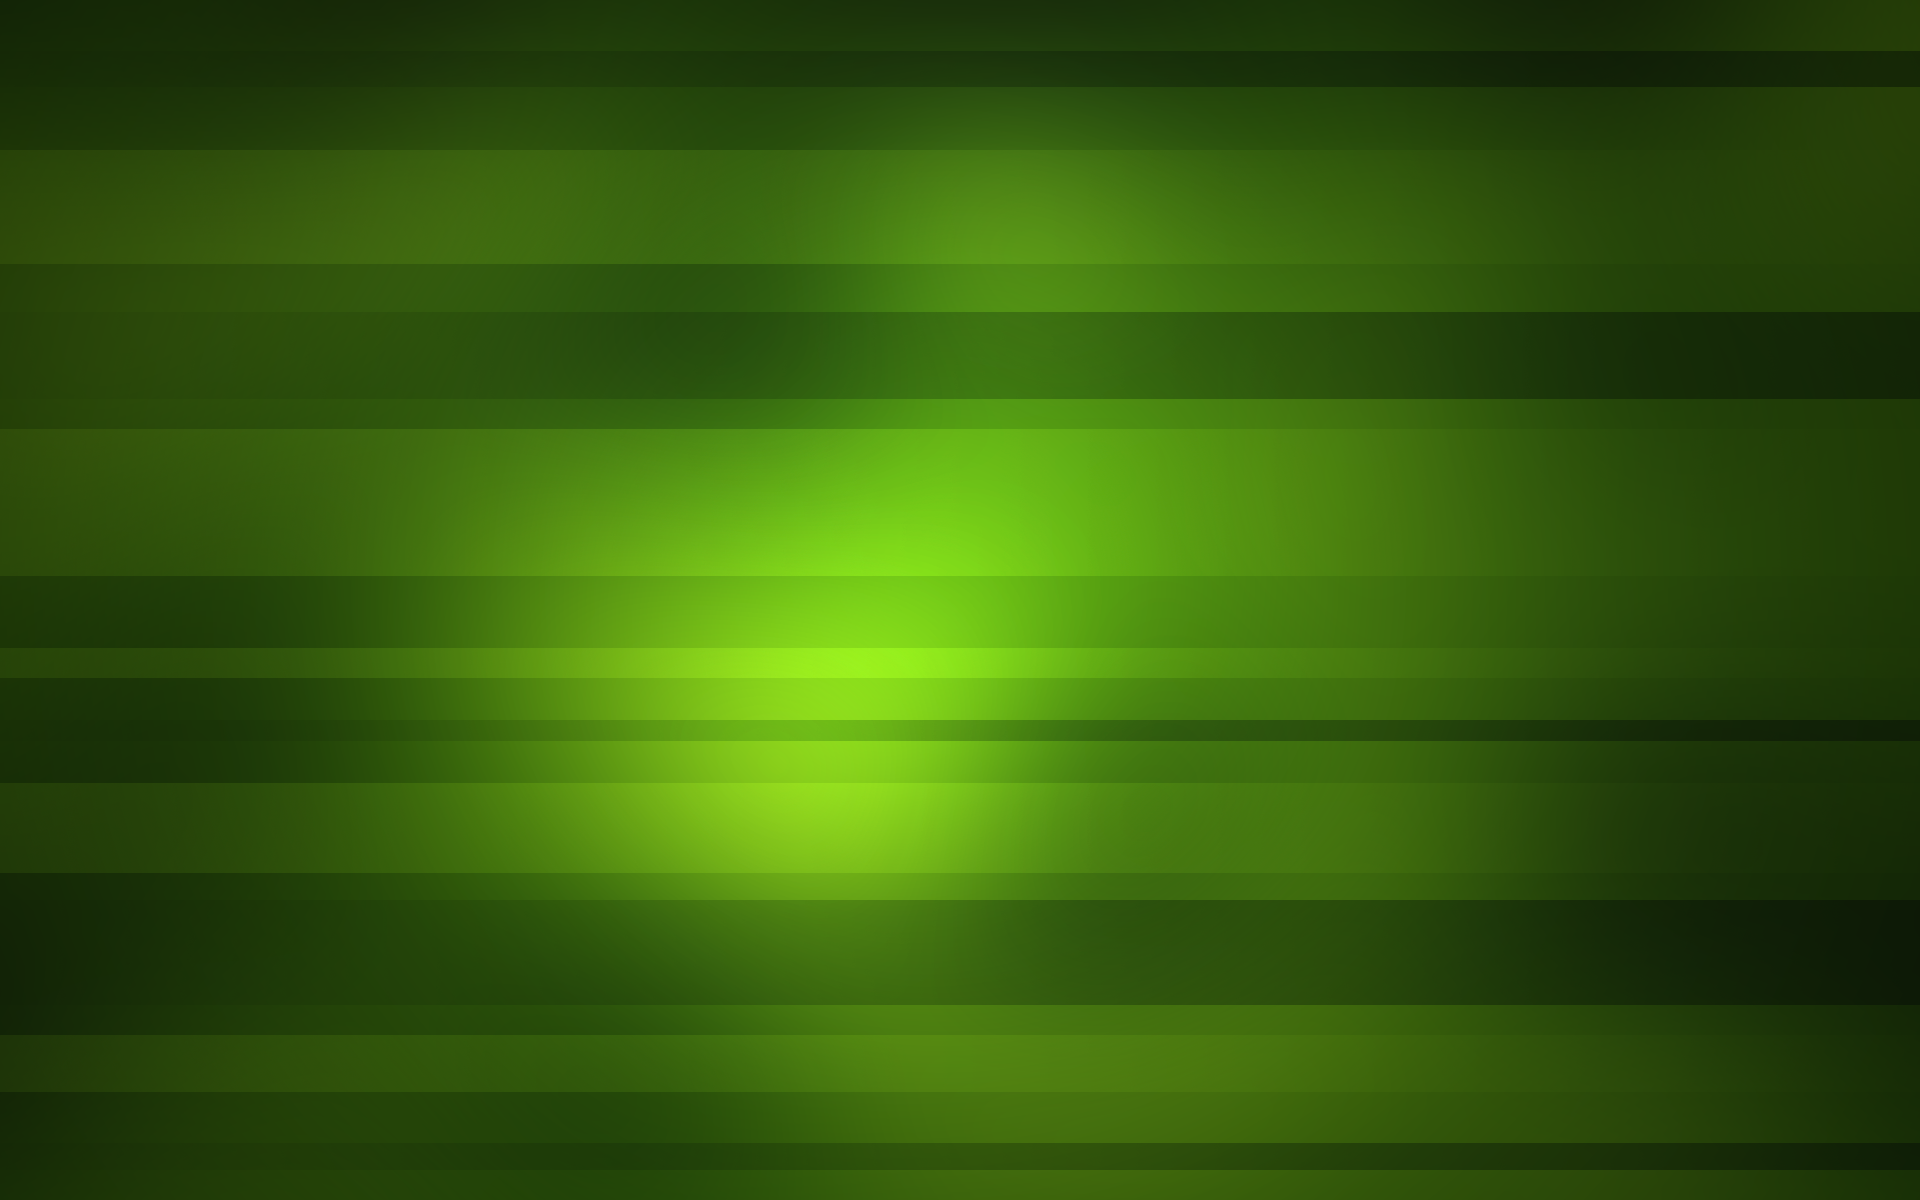 Green Stripes Wallpaper by MB Ps on DeviantArt